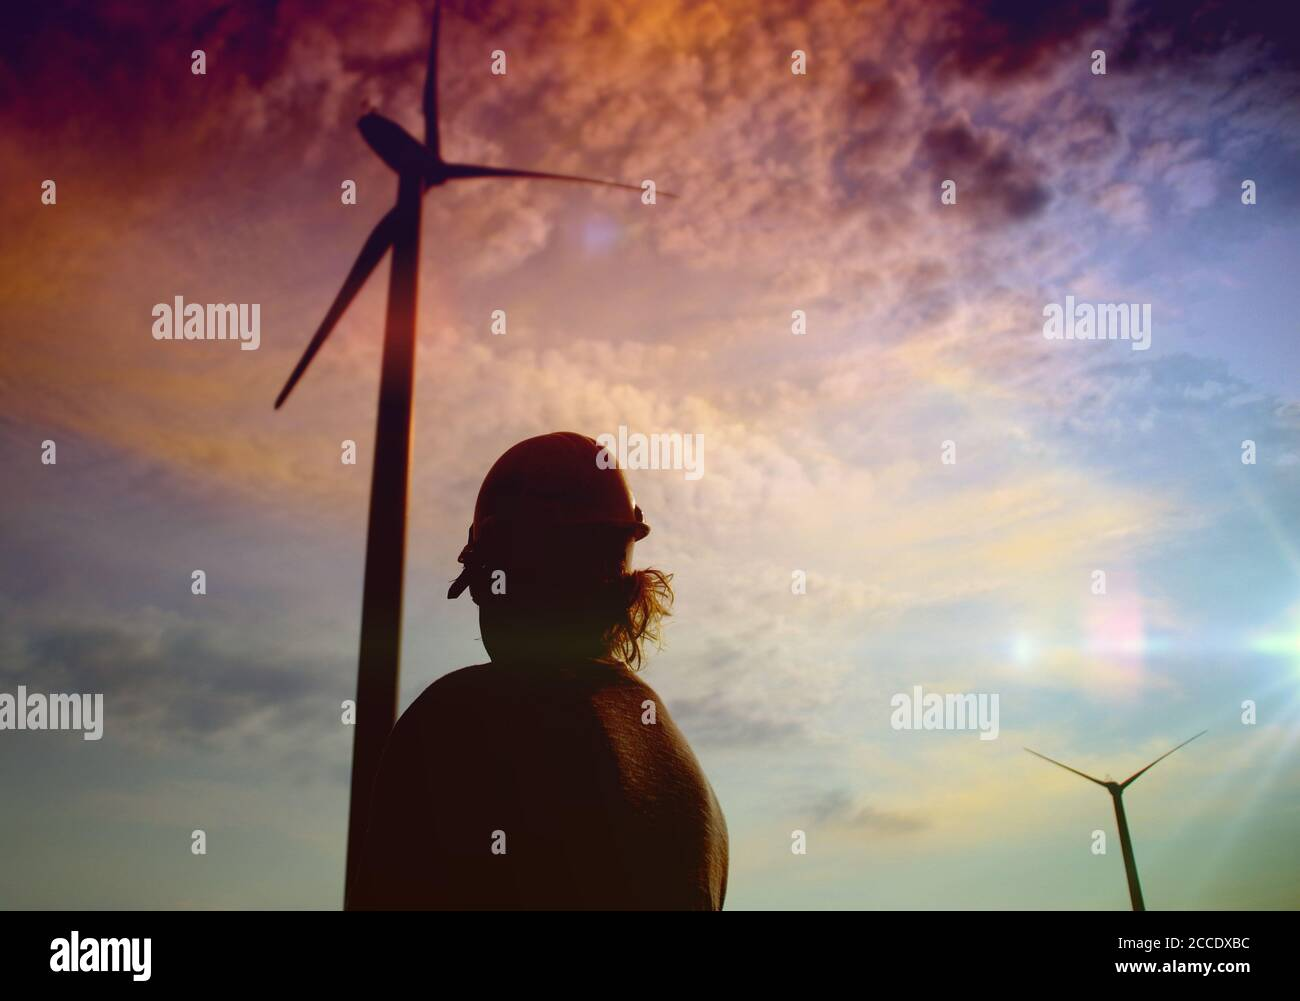 Engineer in a wind turbine. A woman in a helmet supervises the operation of the electric windmills. Ecology and renewable energy sources concept. Stock Photo